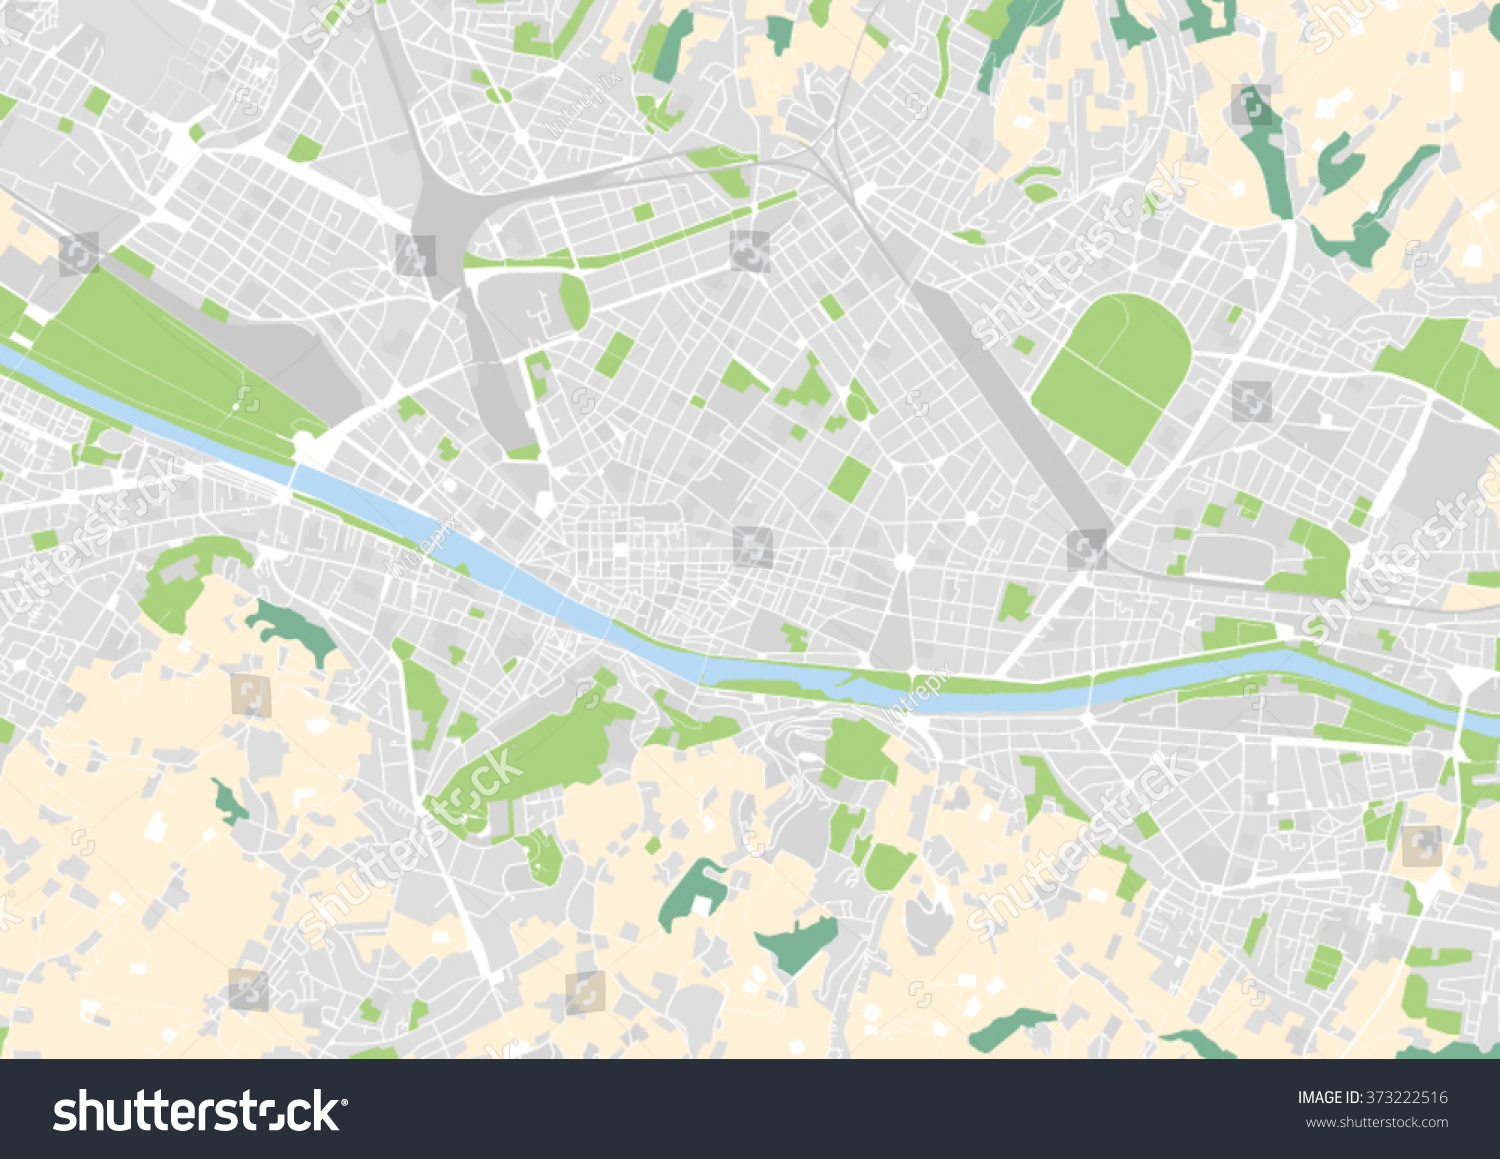 Vector city map florence italy stock vector 373222516 shutterstock vector city map of florence italy gumiabroncs Gallery